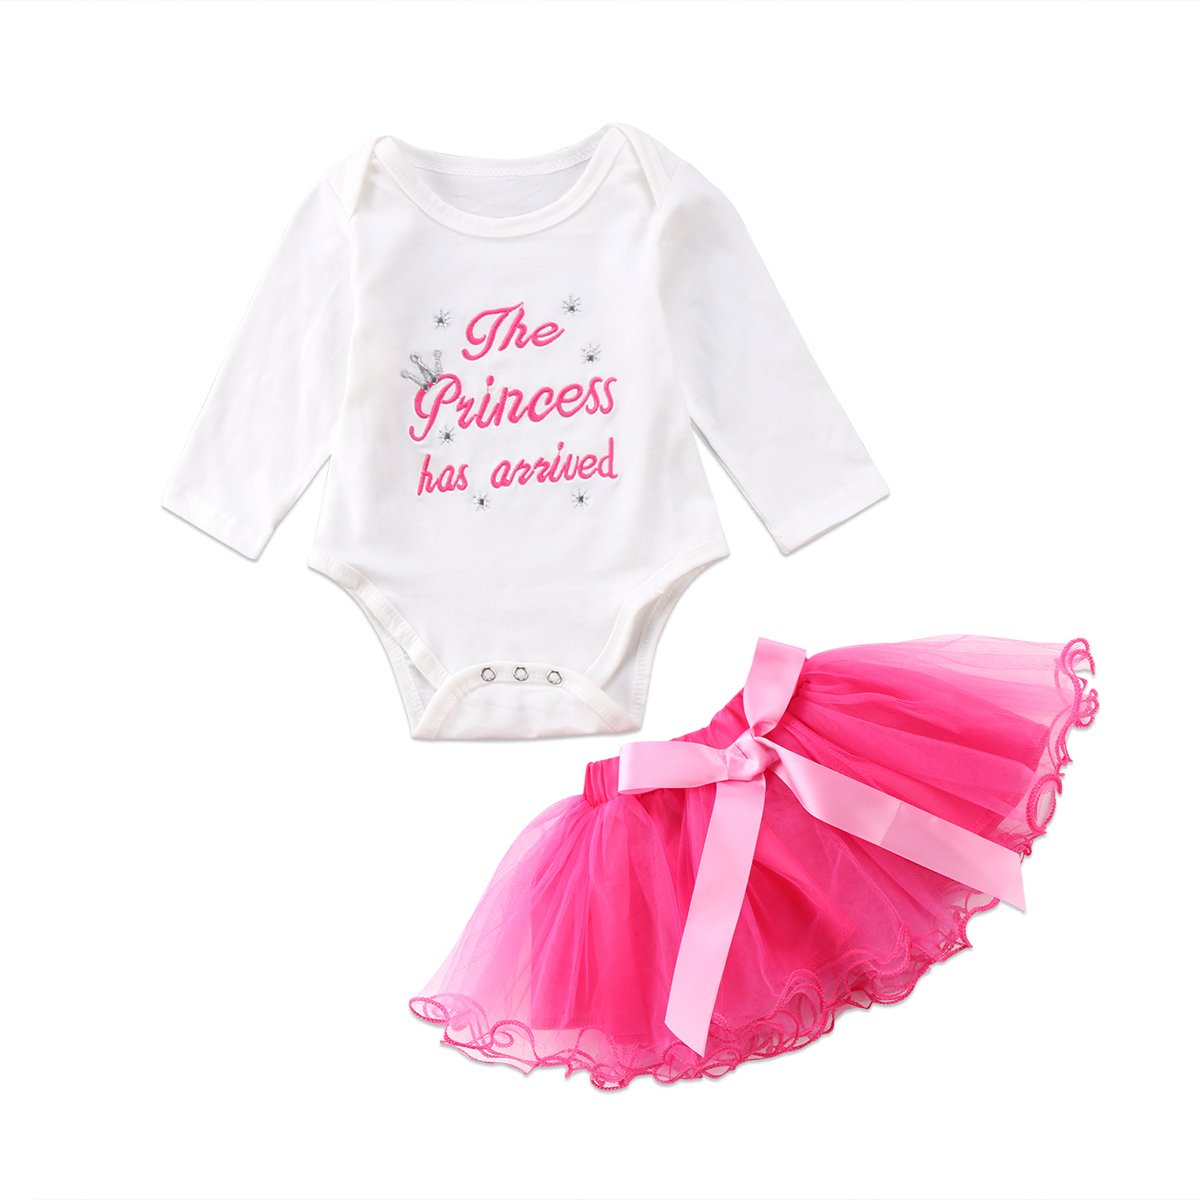 Imcute Baby Girls Princess Costume Dres Romper Playsuit and Pink Ruffle Tutu Skirt